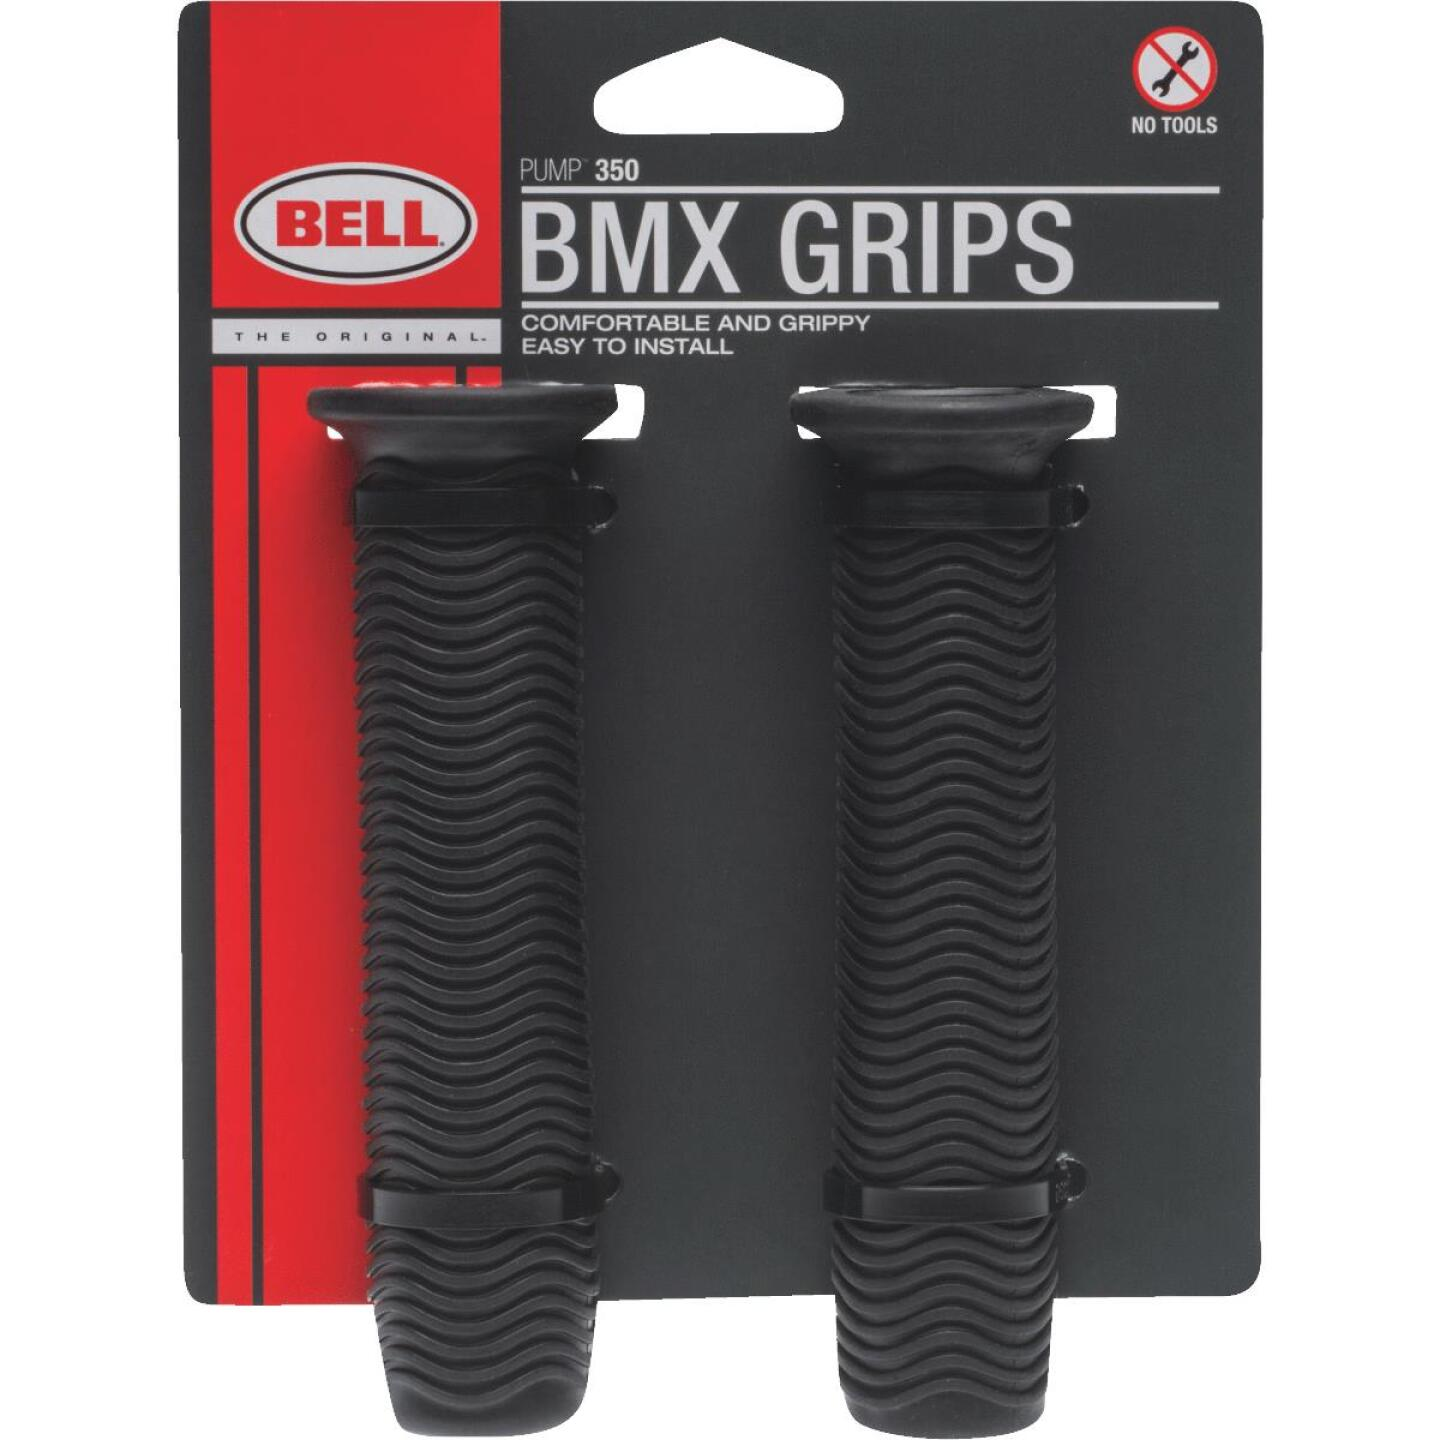 Bell Black Thermo Plastic Rubber BMX Handlebar Grip Image 1